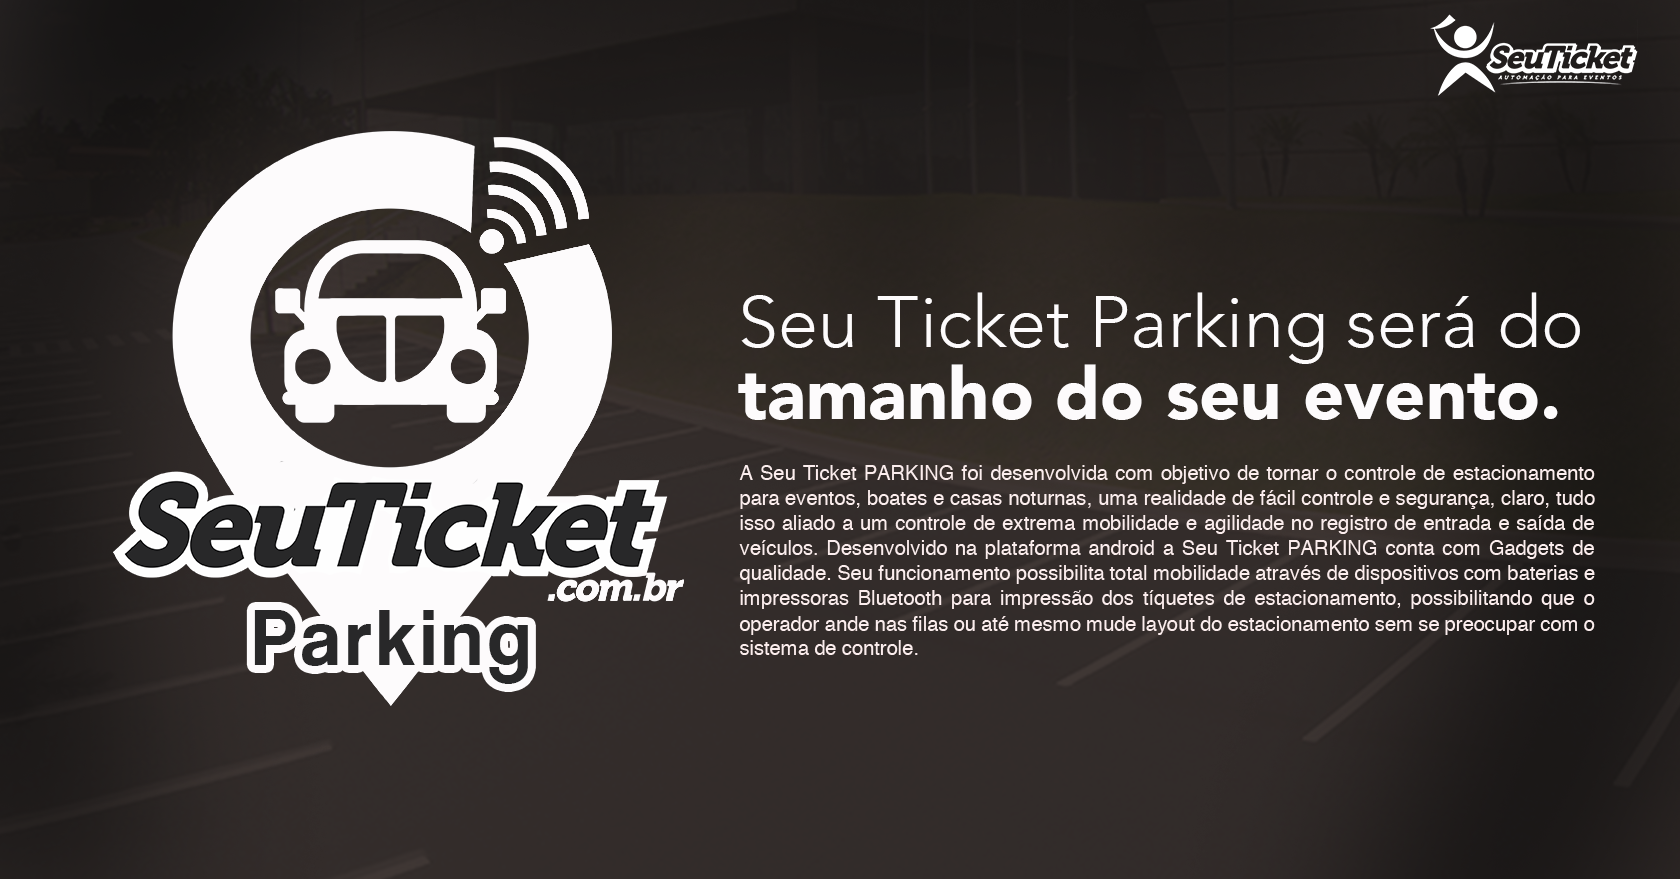 Seu Ticket Parking